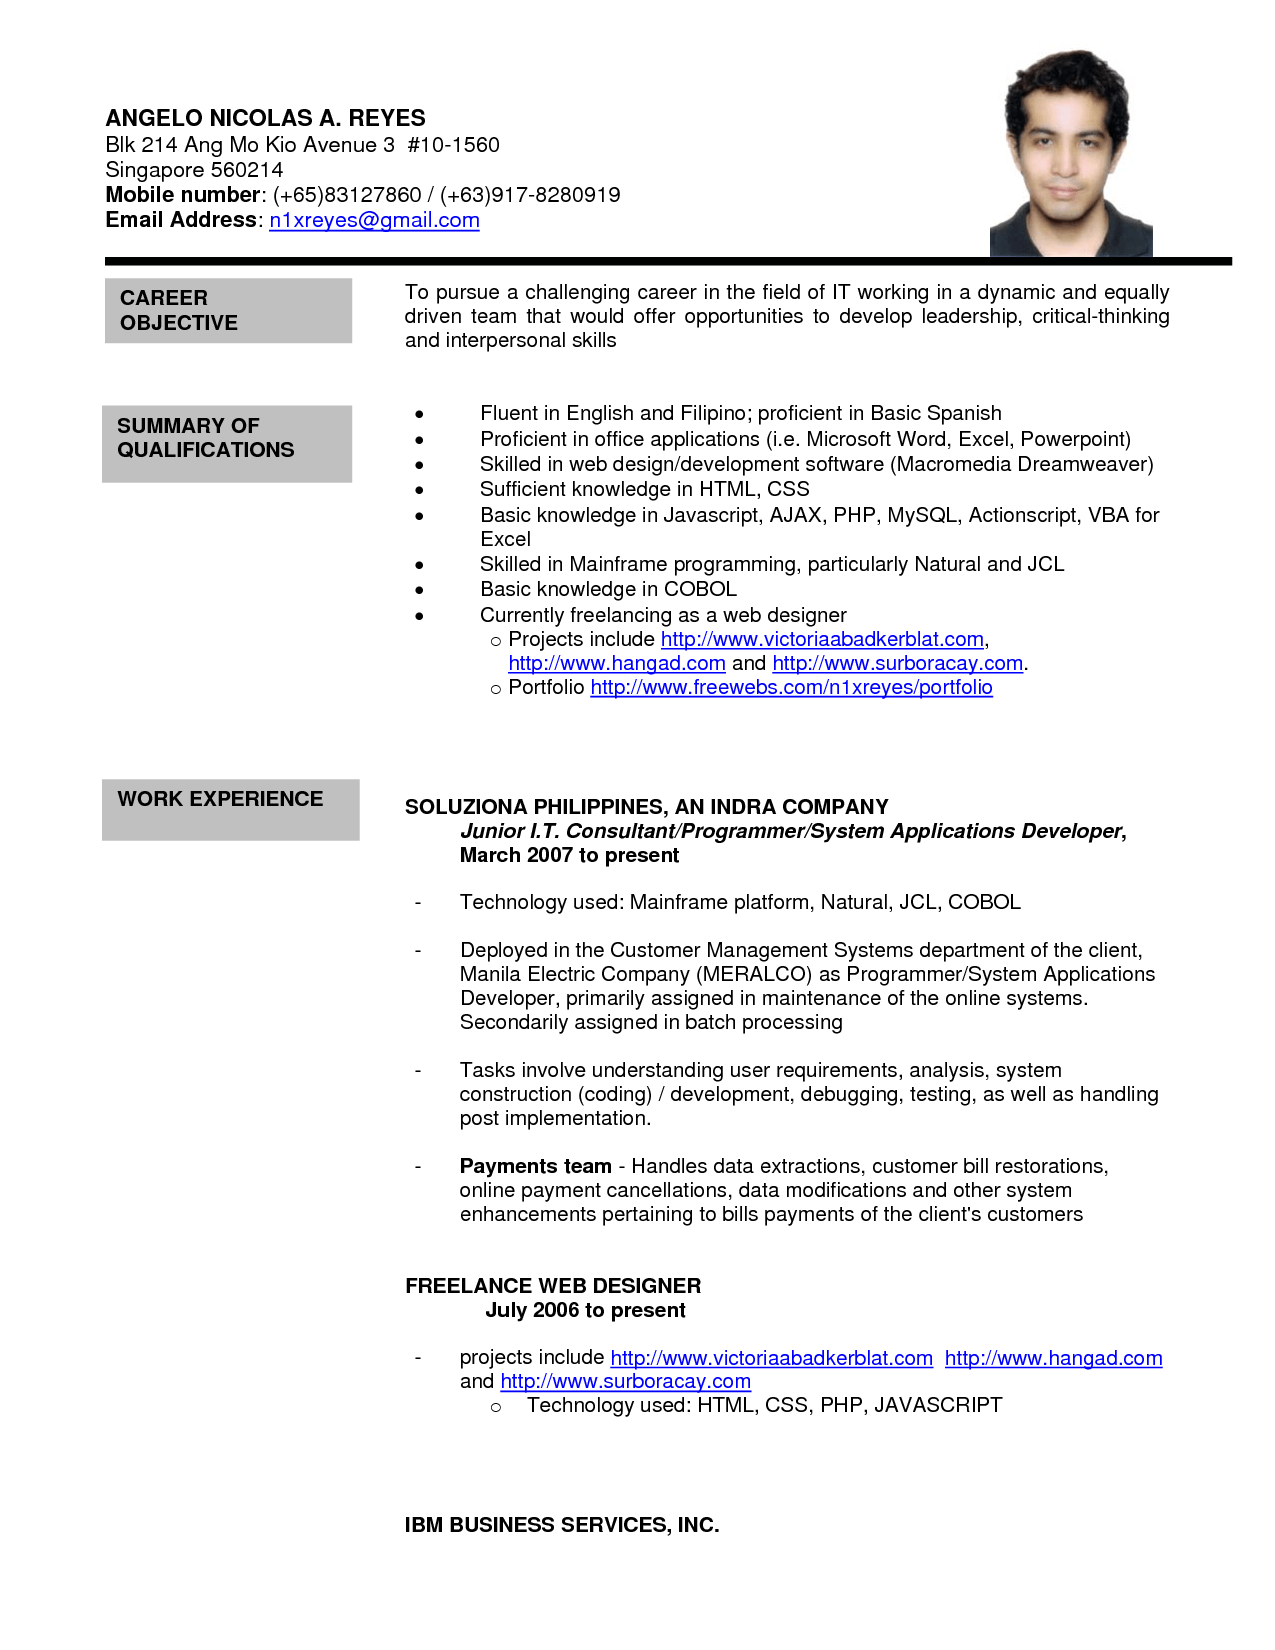 Work Resume Template Singapore corporate trainer resume examples – Resume Format Singapore